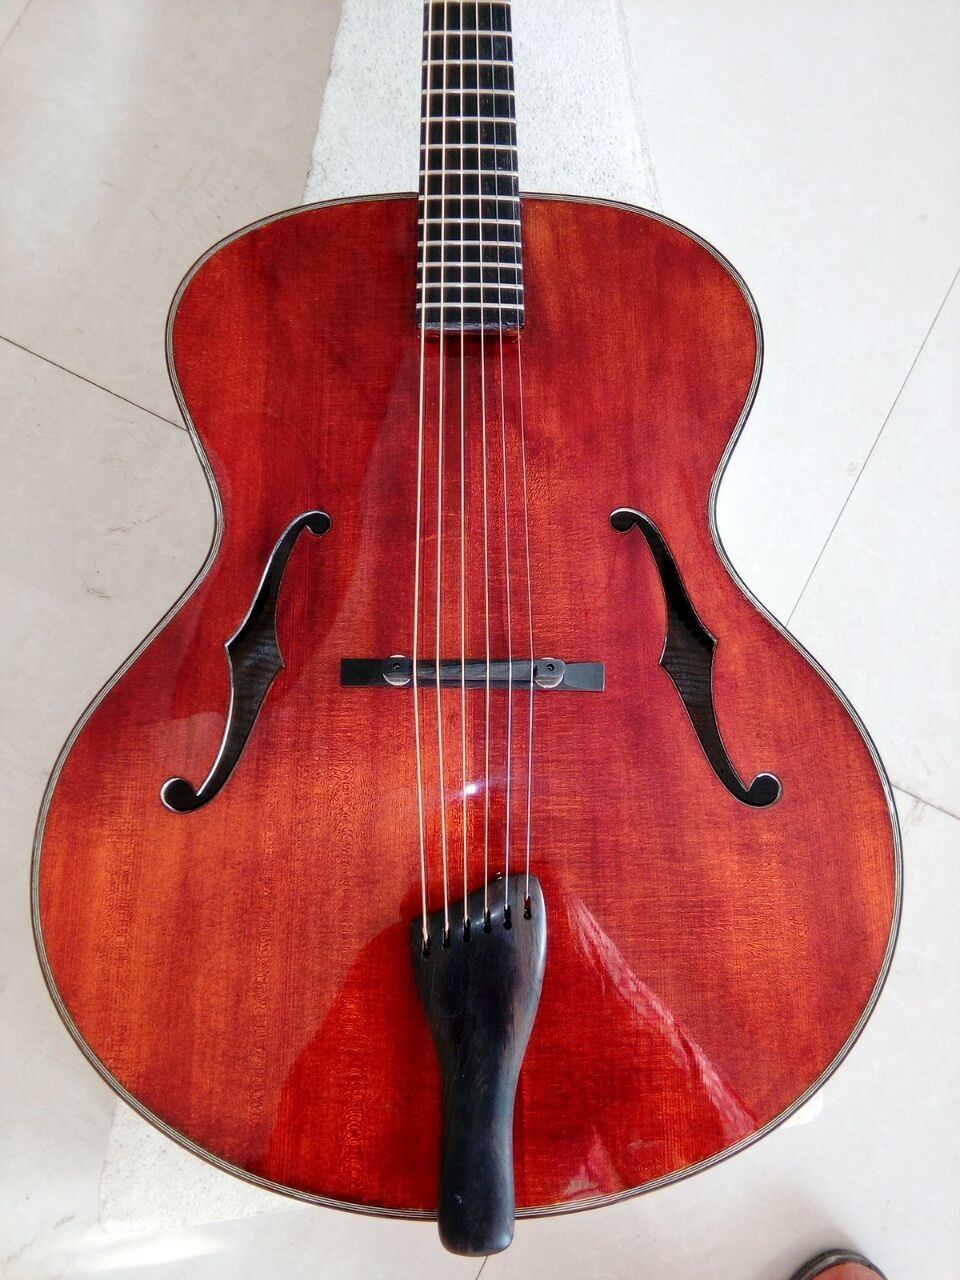 18inch AAA wood fully handmade archtop acoustic guitar